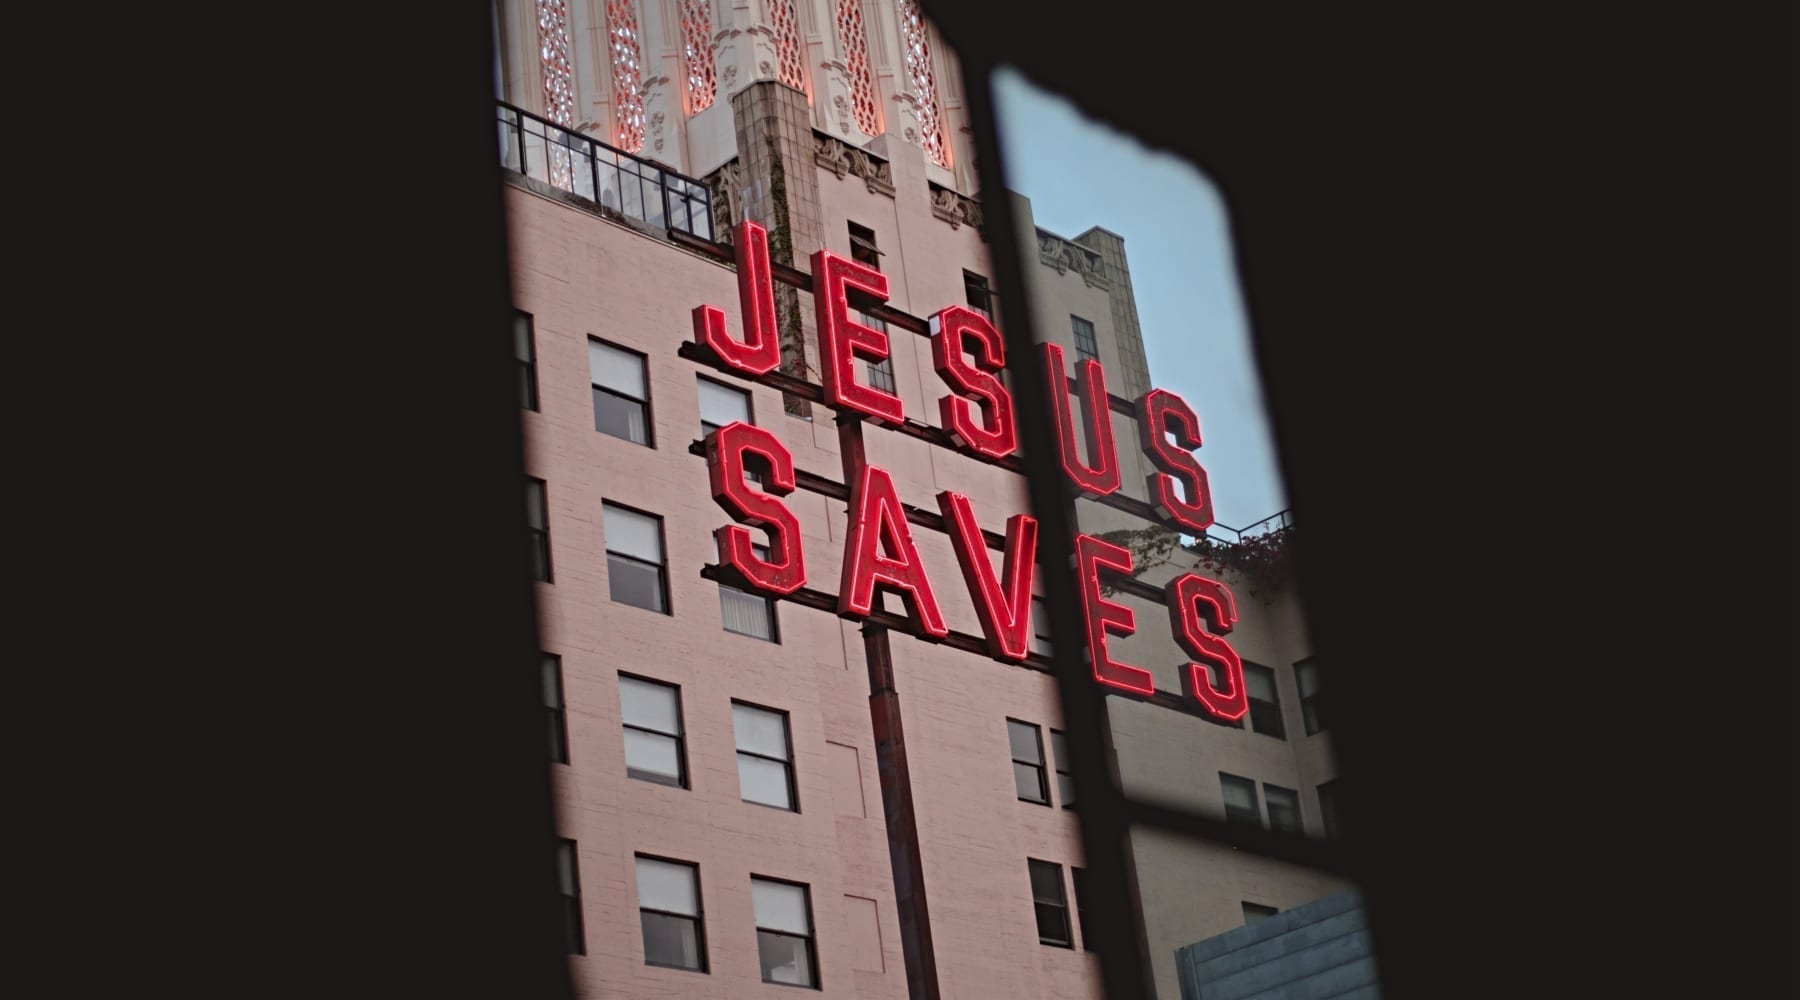 Red Jesus Saves sign on metal polls in front of buildings